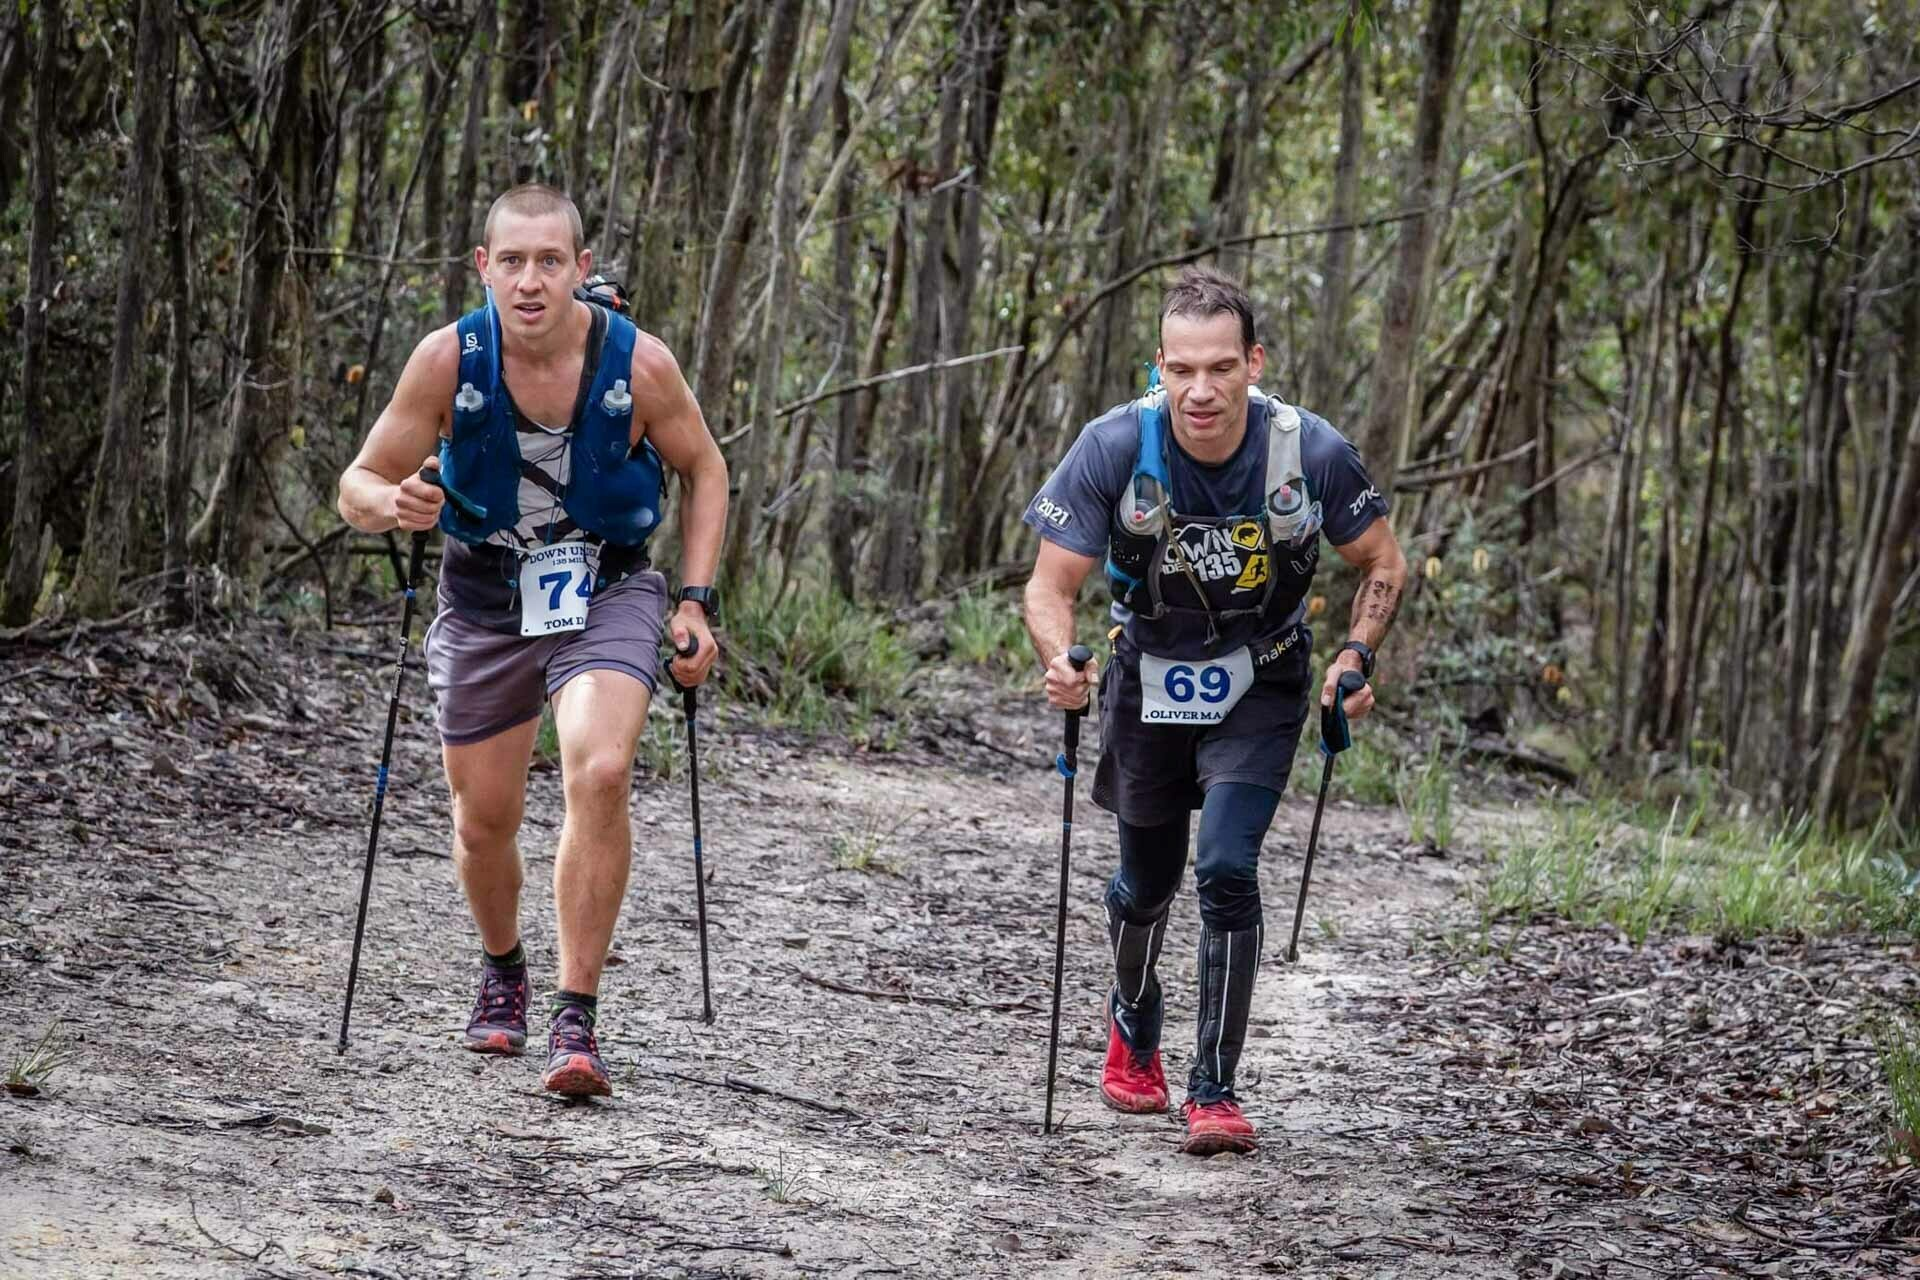 One of the Gnarliest Races in the Southern Hemisphere Can Be Found Just Out of Melbourne, photo by the Eventurers, Tom Dade, running, ultrarunning, competition